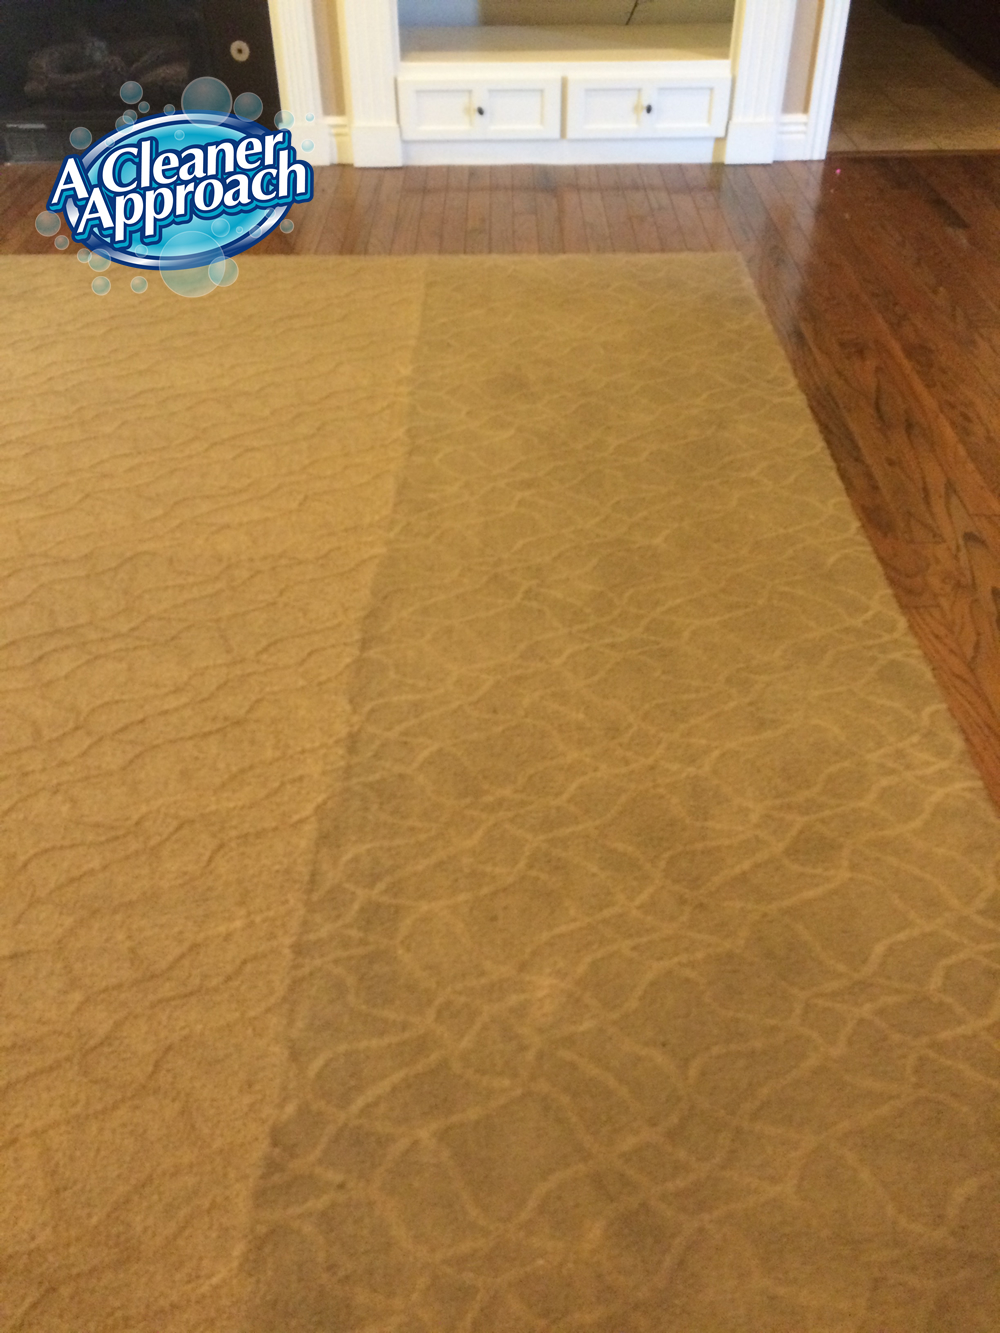 Carpet & Area Rug Cleaning 6